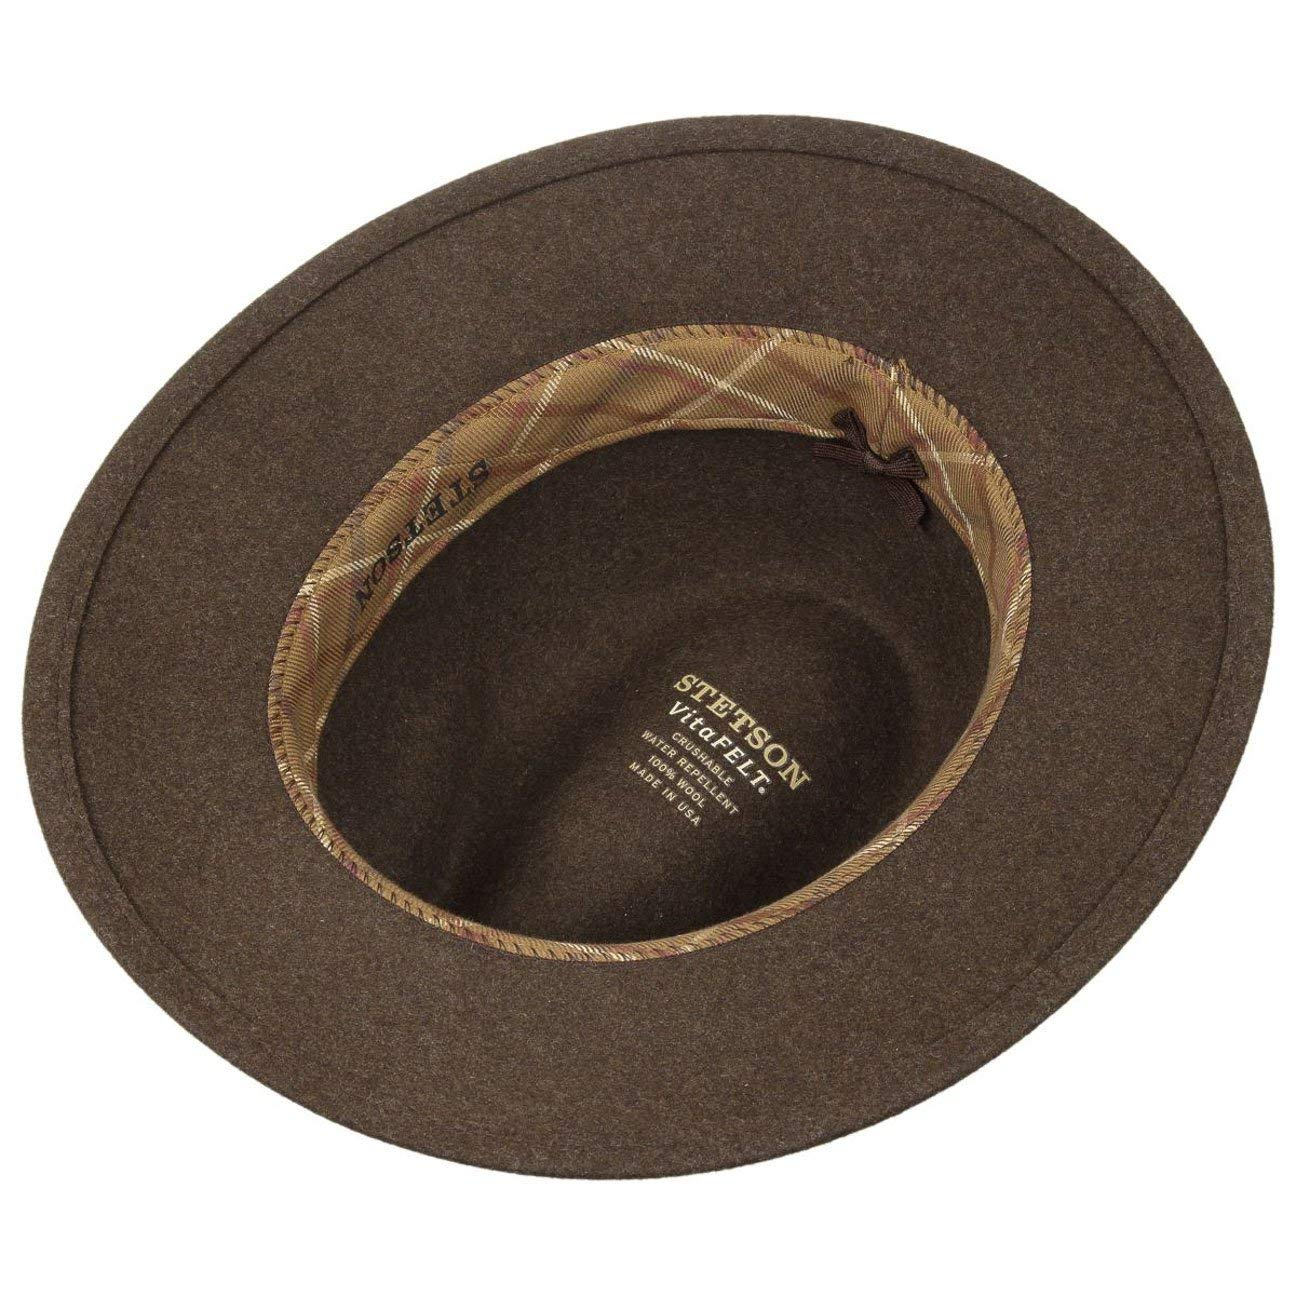 b2a24eda Stetson Newberg VitaFelt Traveller Hat Men | Made in USA Wool Felt Winter  with Leather Trim Summer-Winter: Amazon.co.uk: Clothing